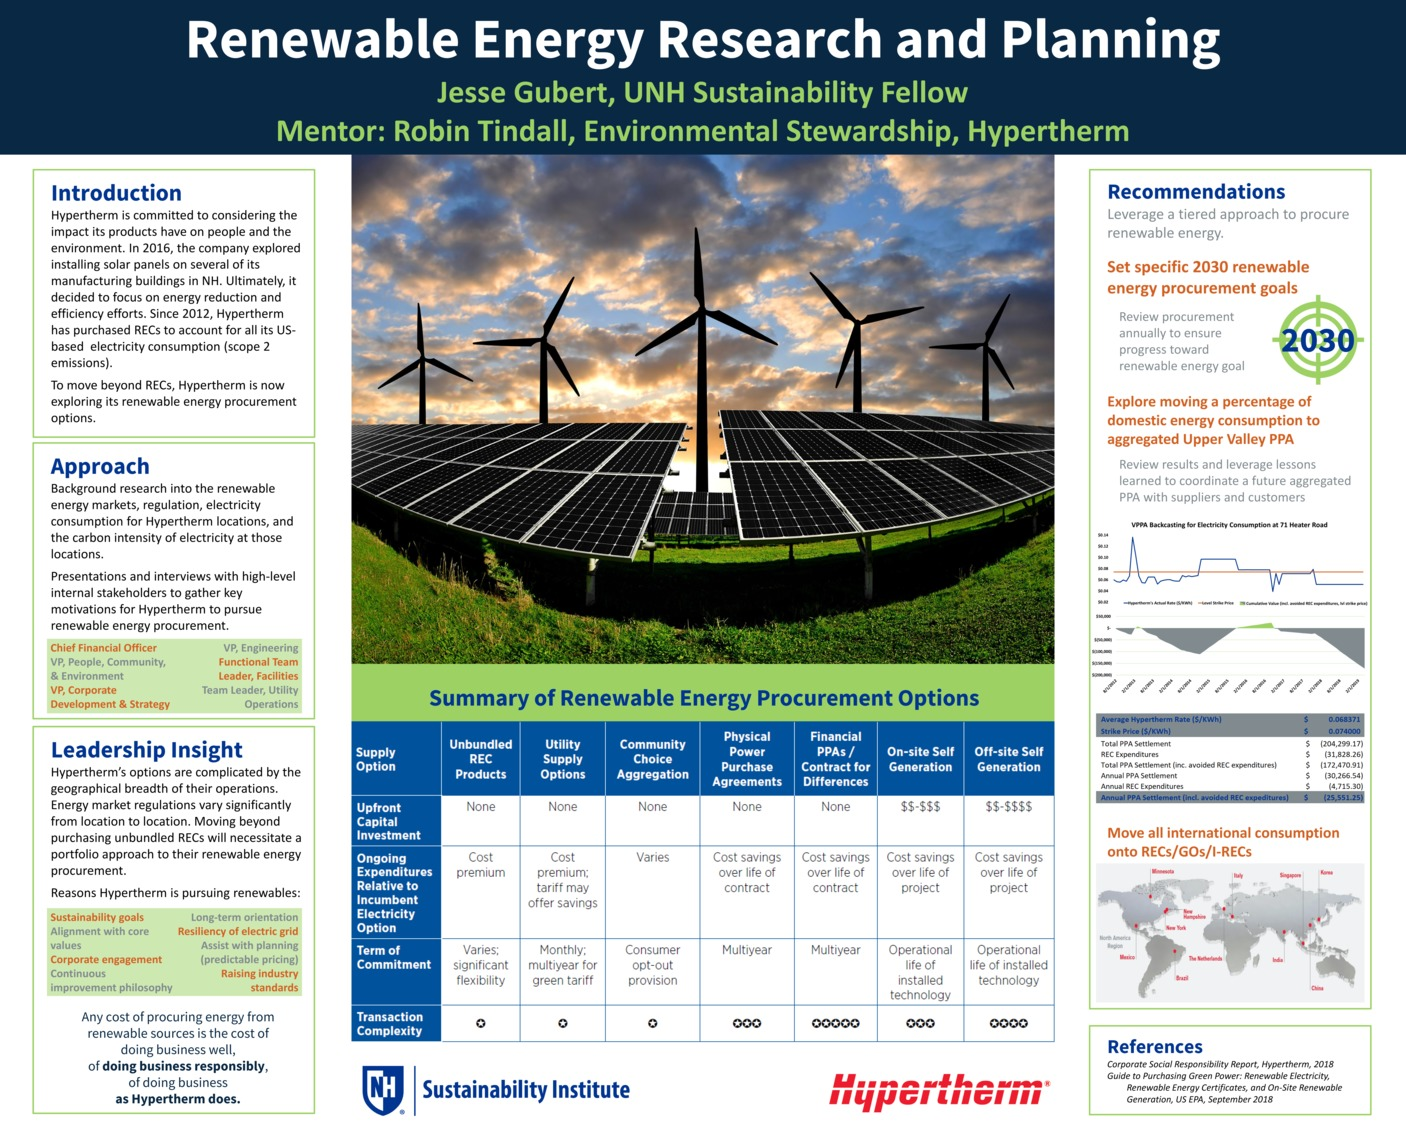 Renewable Energy Research And Planning_Final Poster by jdgubert